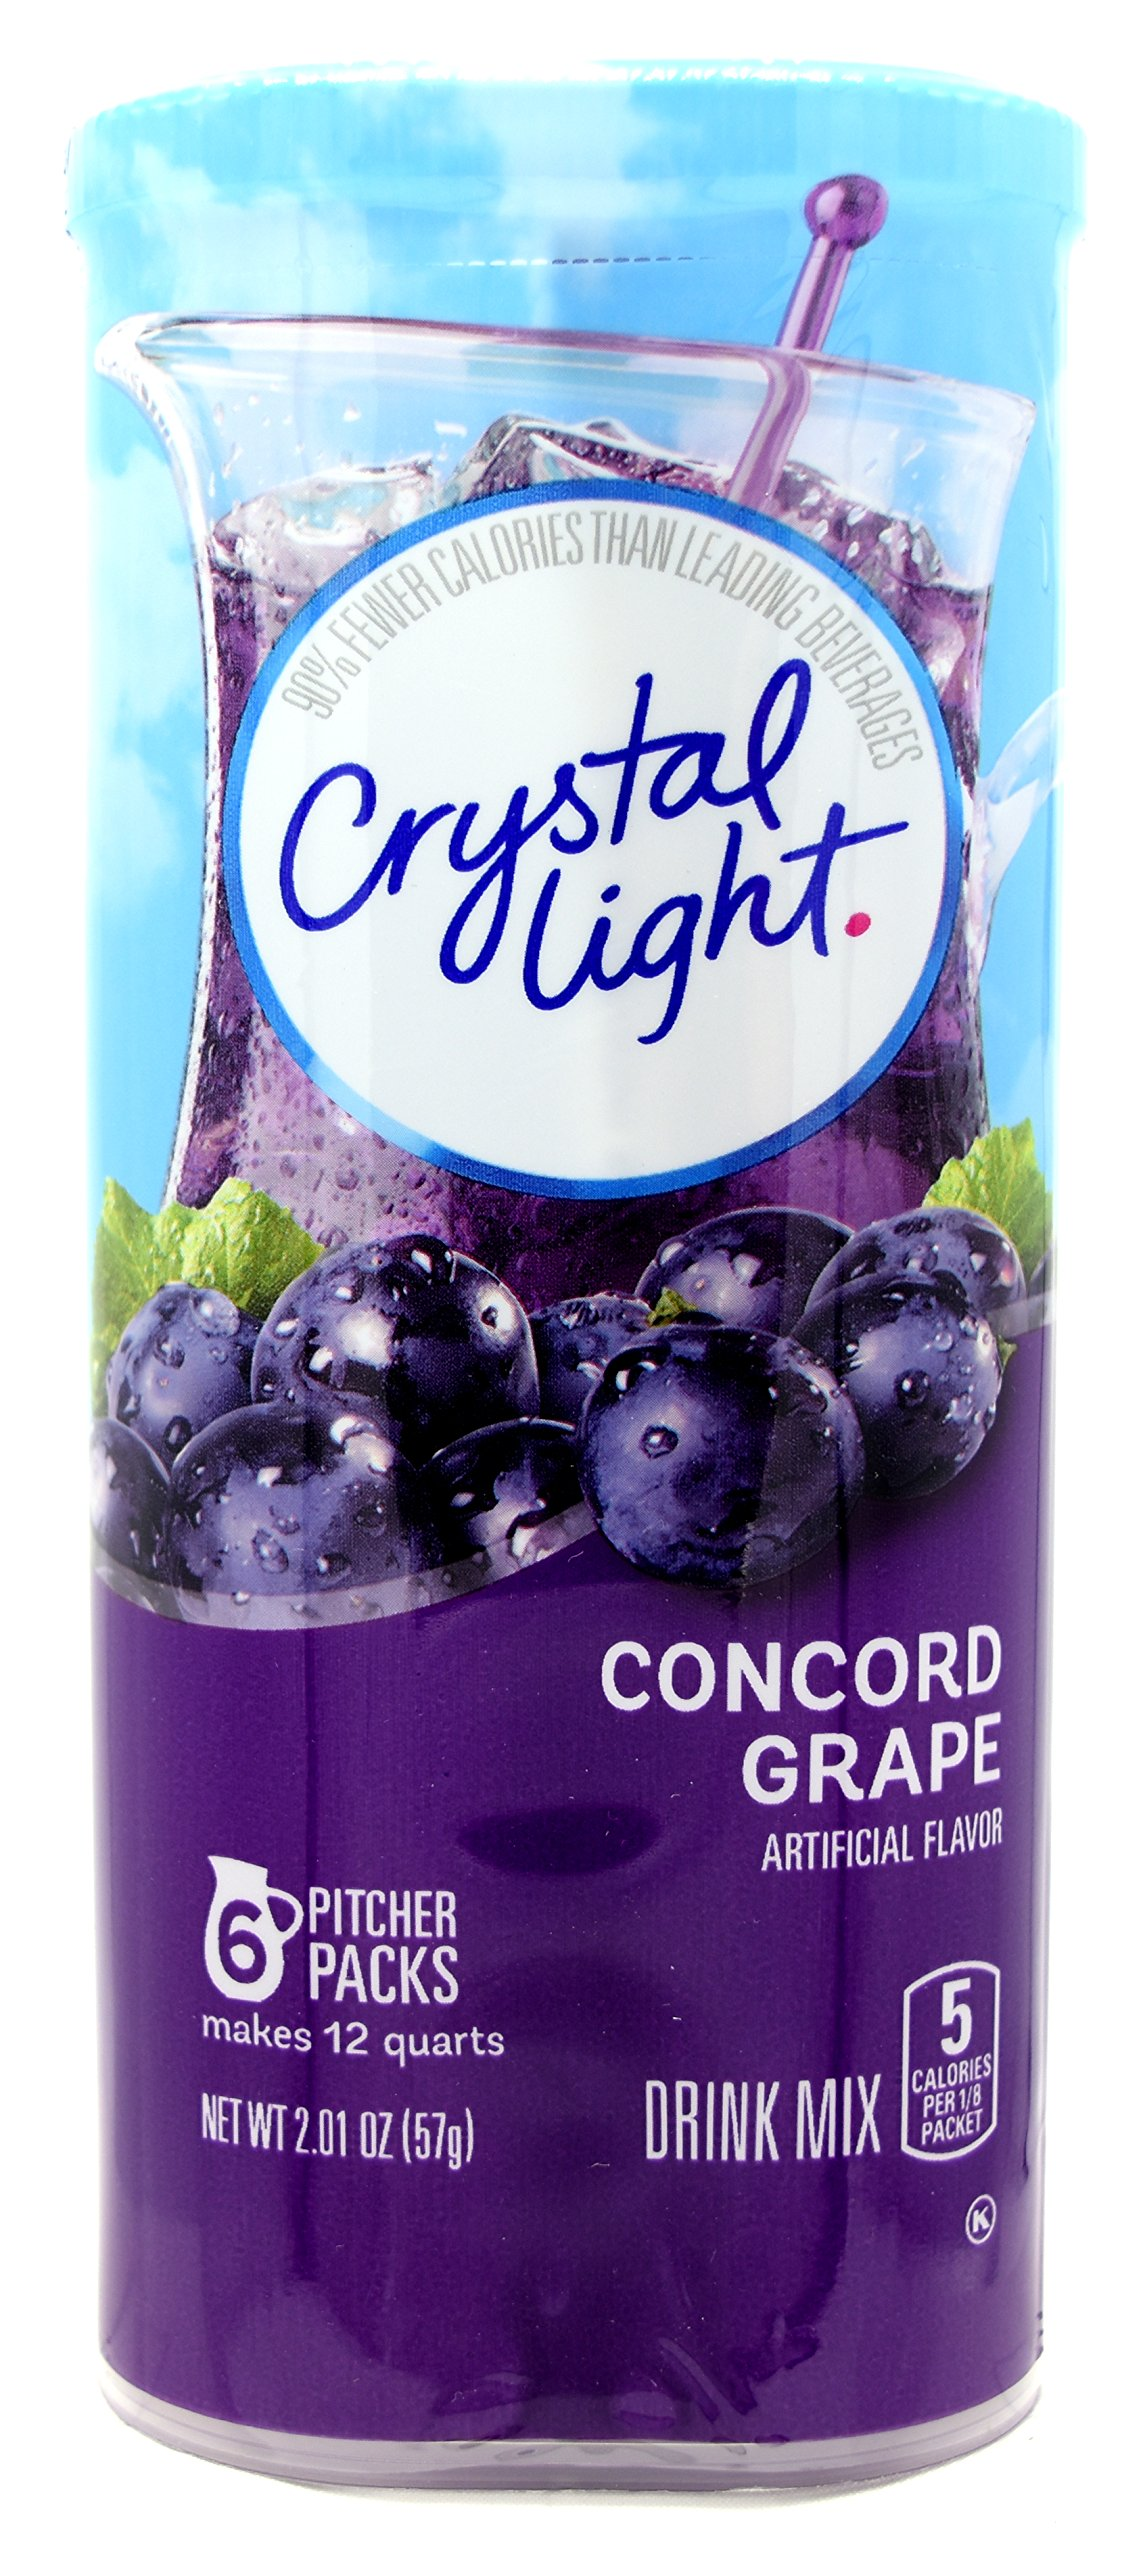 Crystal Light Concord Grape, 12-Quart Canister Canister (Pack Of 5)